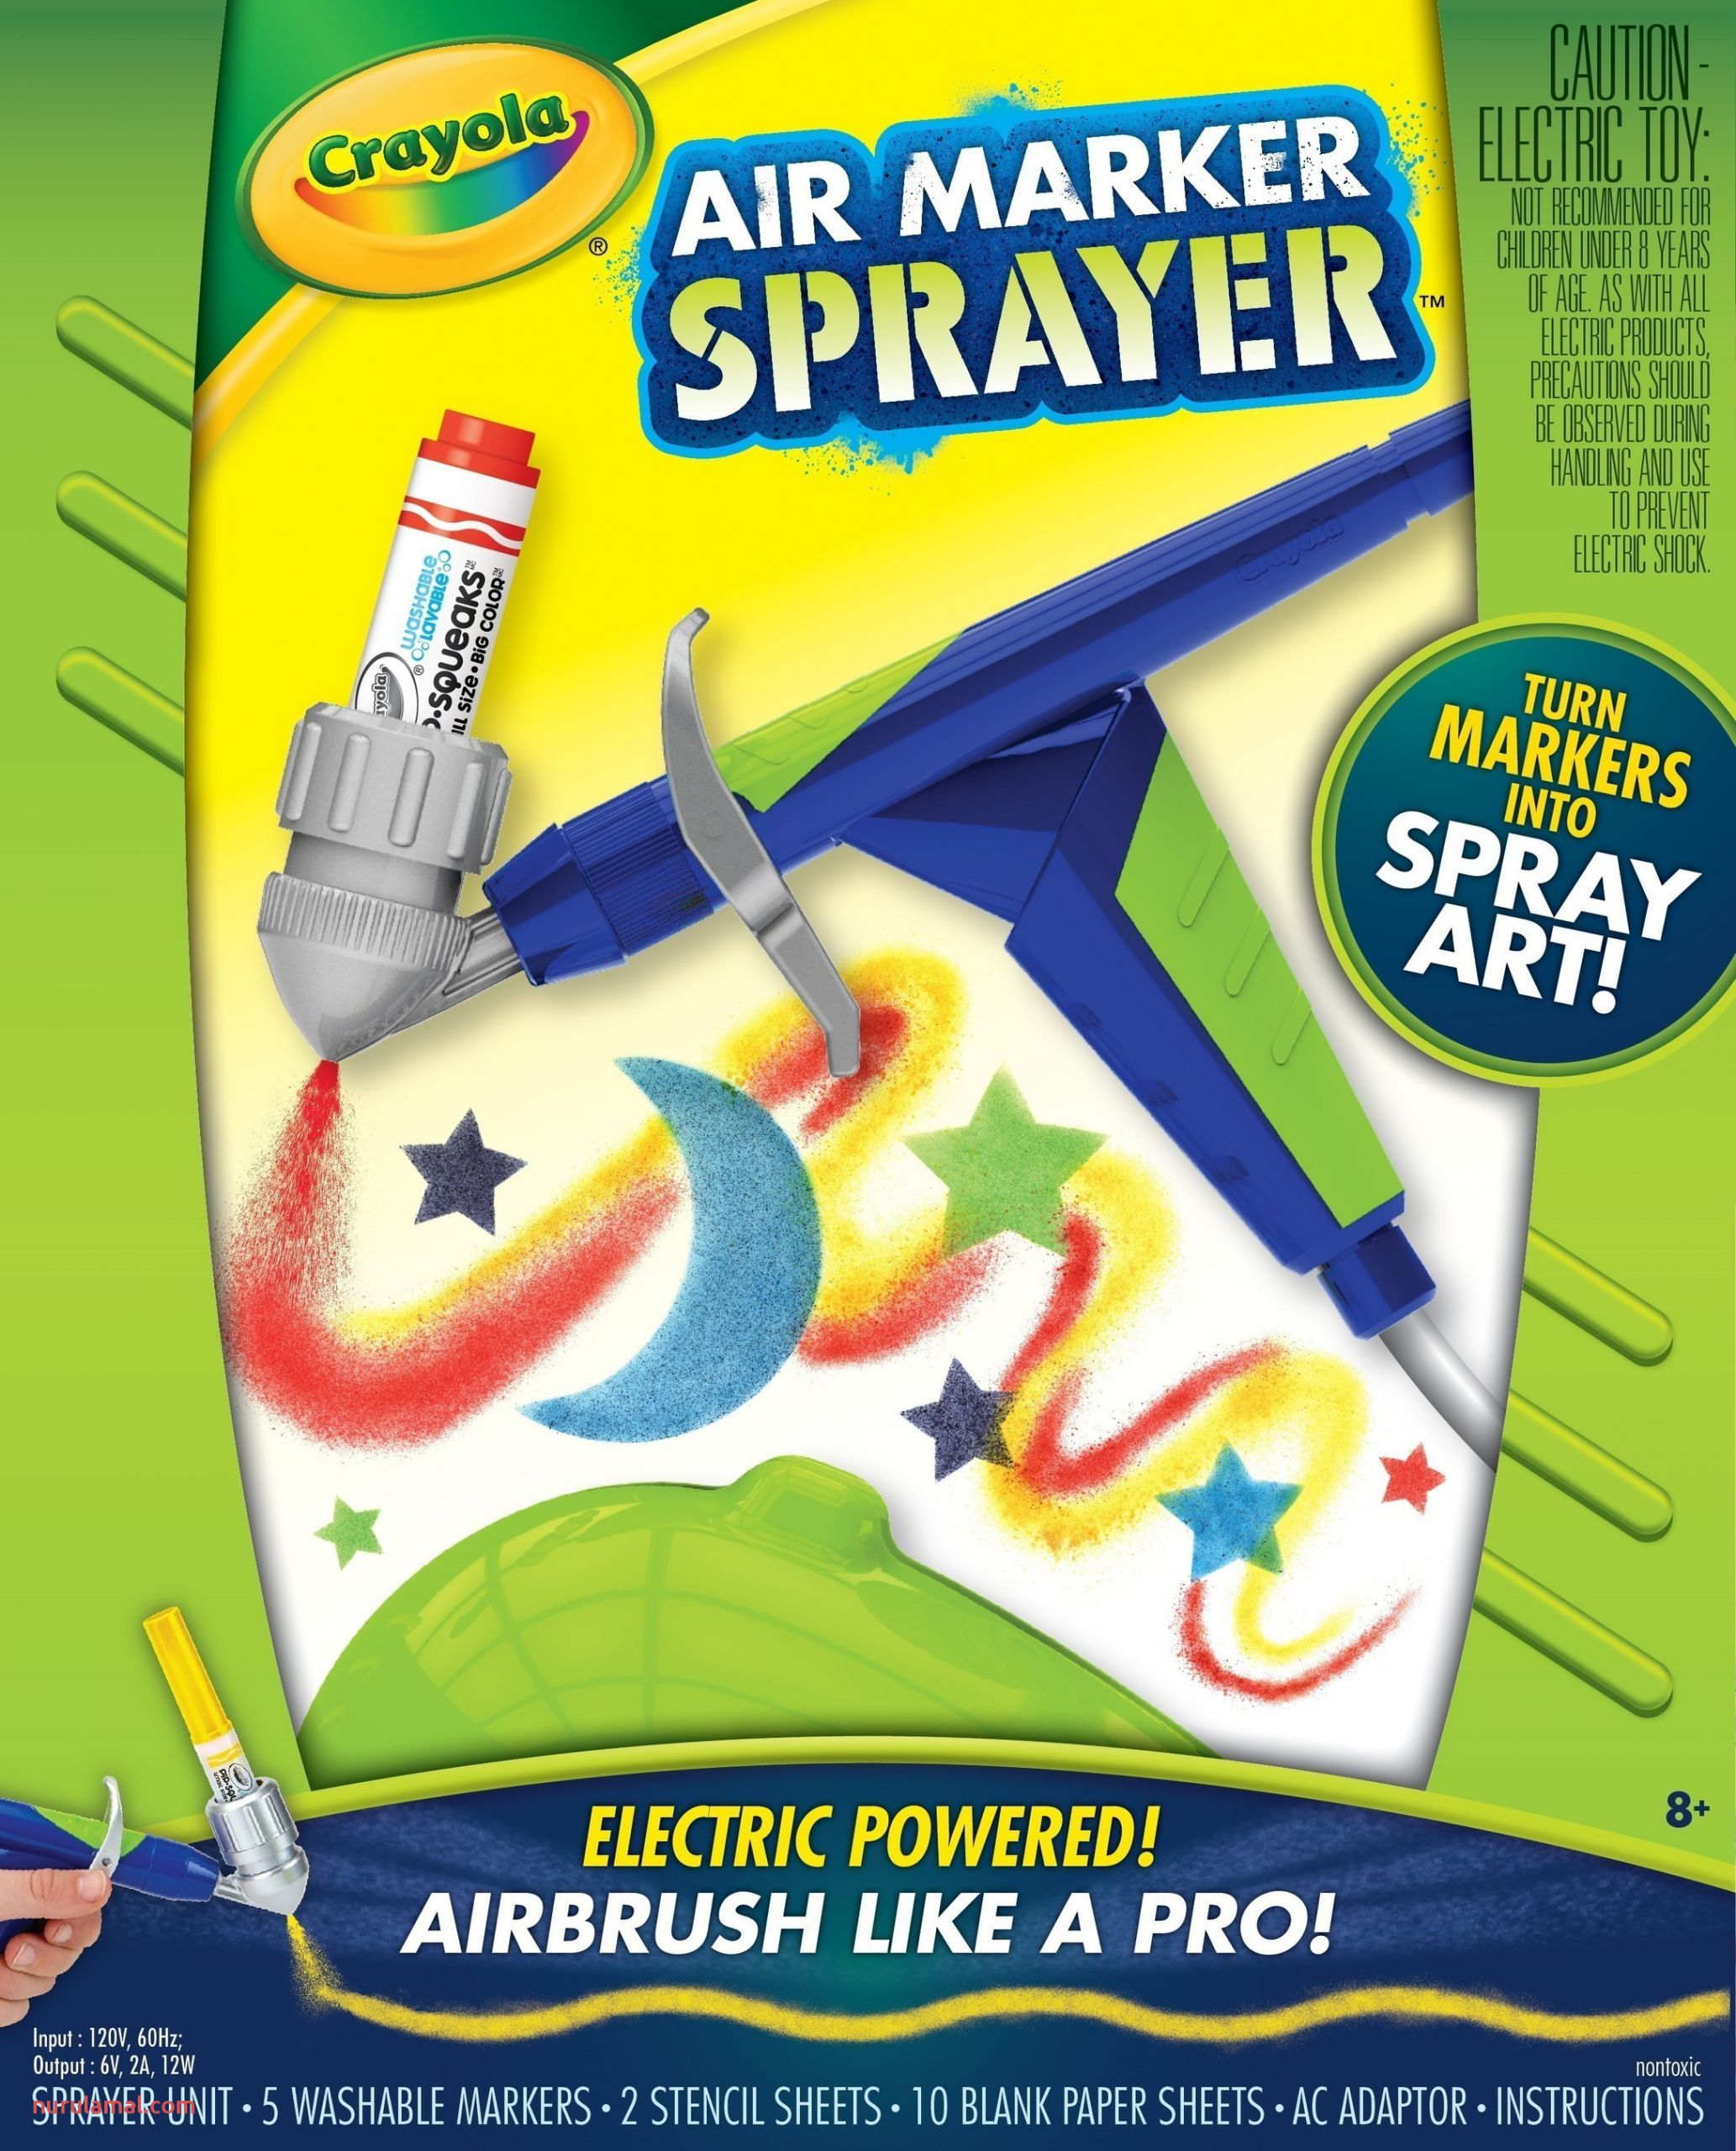 New Crayola Products Use Color and Innovative Play